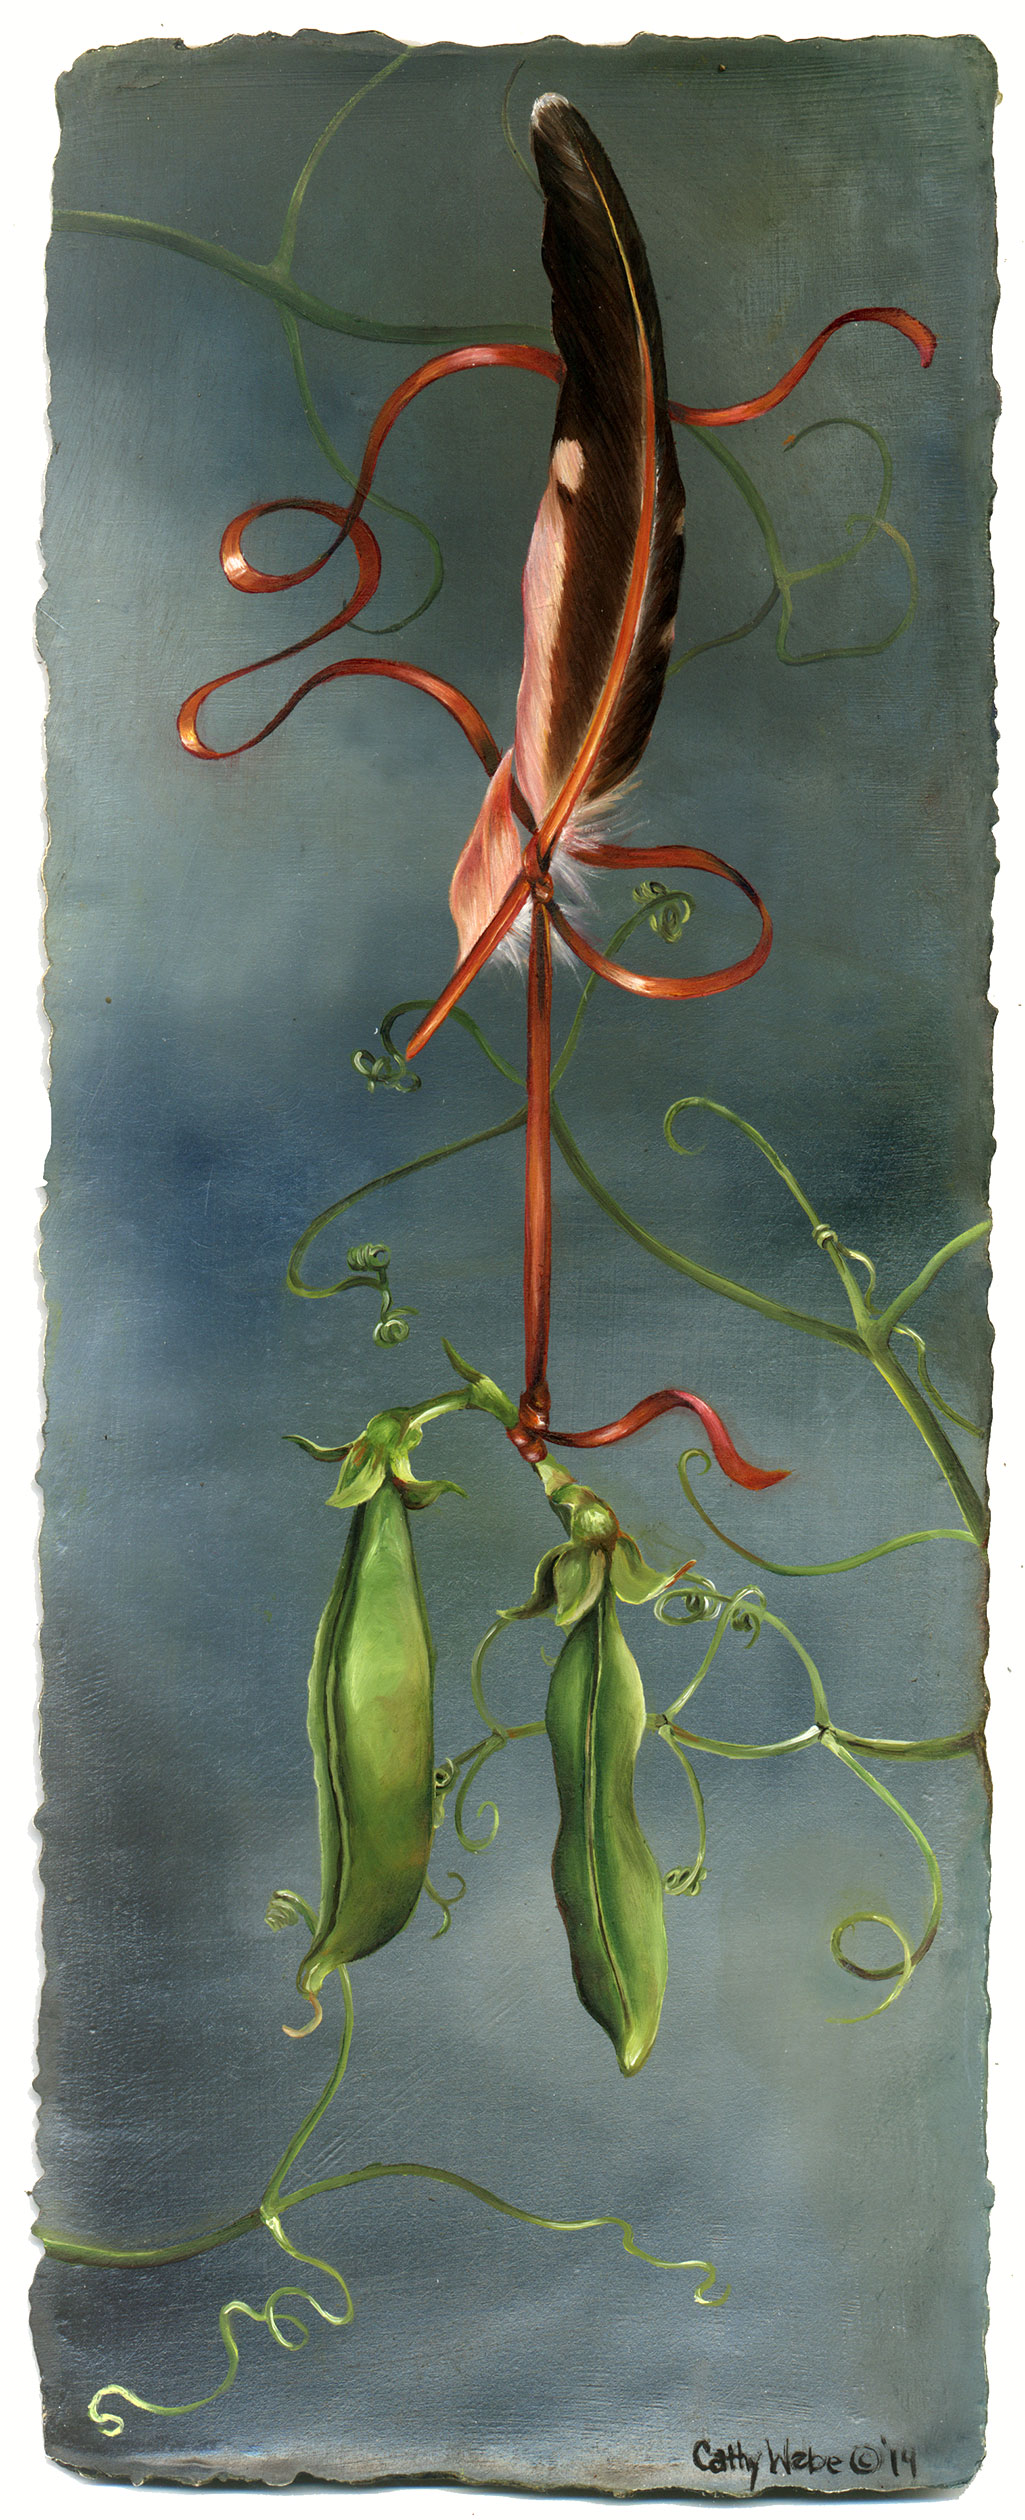 cathy weber - art - painting - woman - oil - montana - painting - botanical - ribbon - pea - oil painting